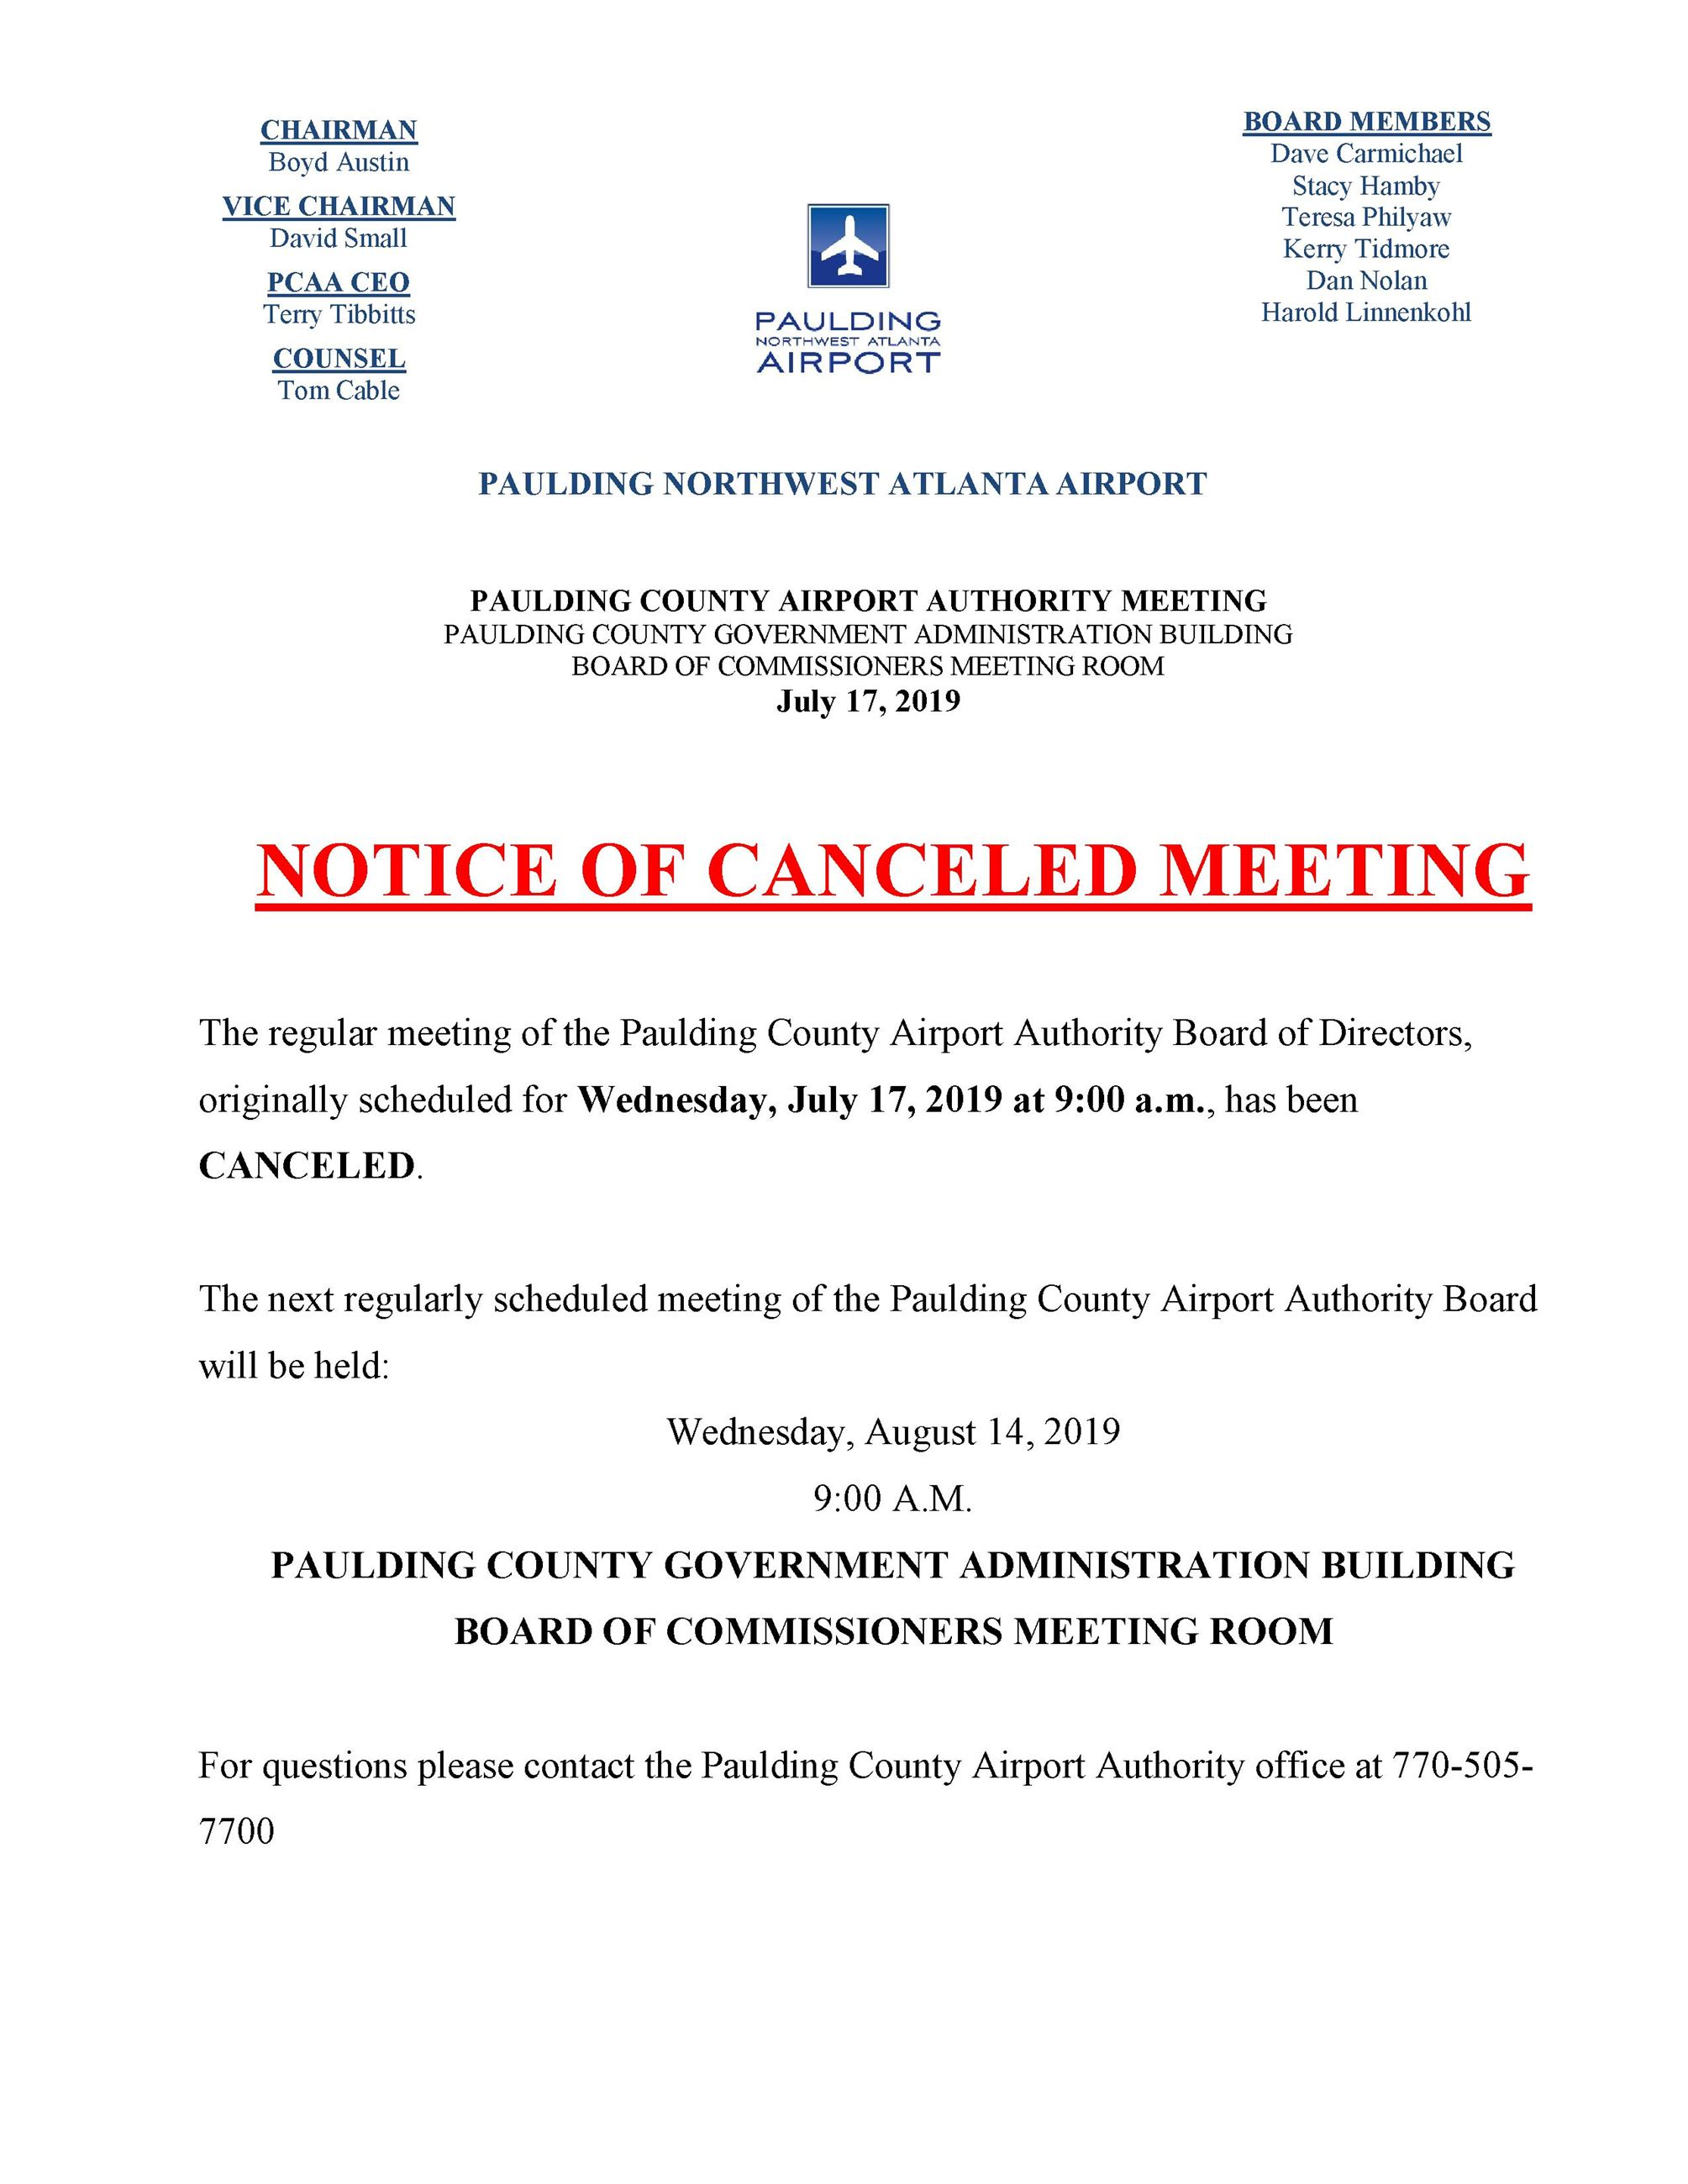 07.17.19 PCAA Notice of Canceled Meeting